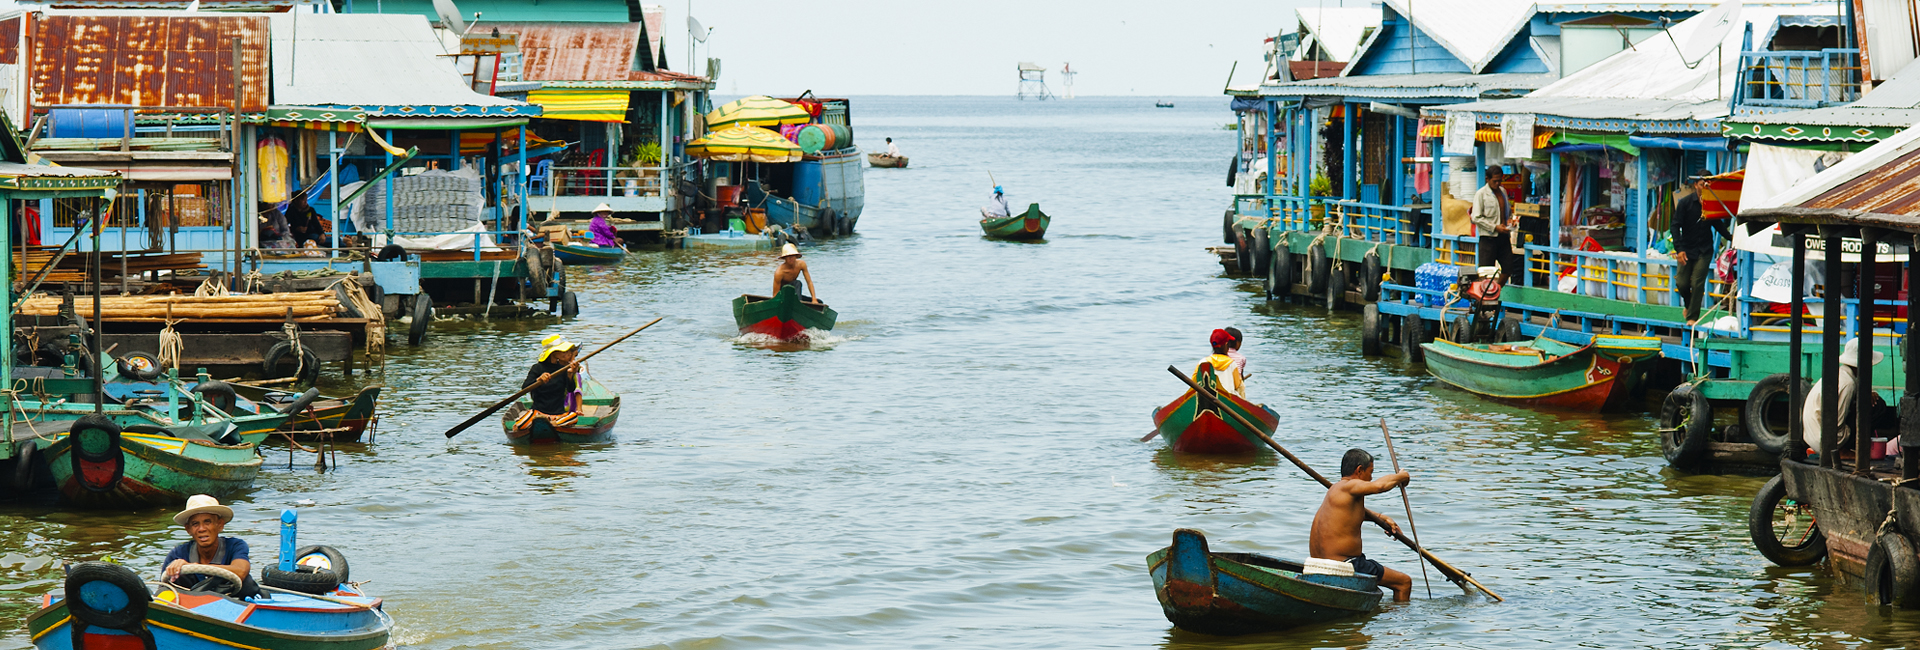 blog-luxury cruise Mekong